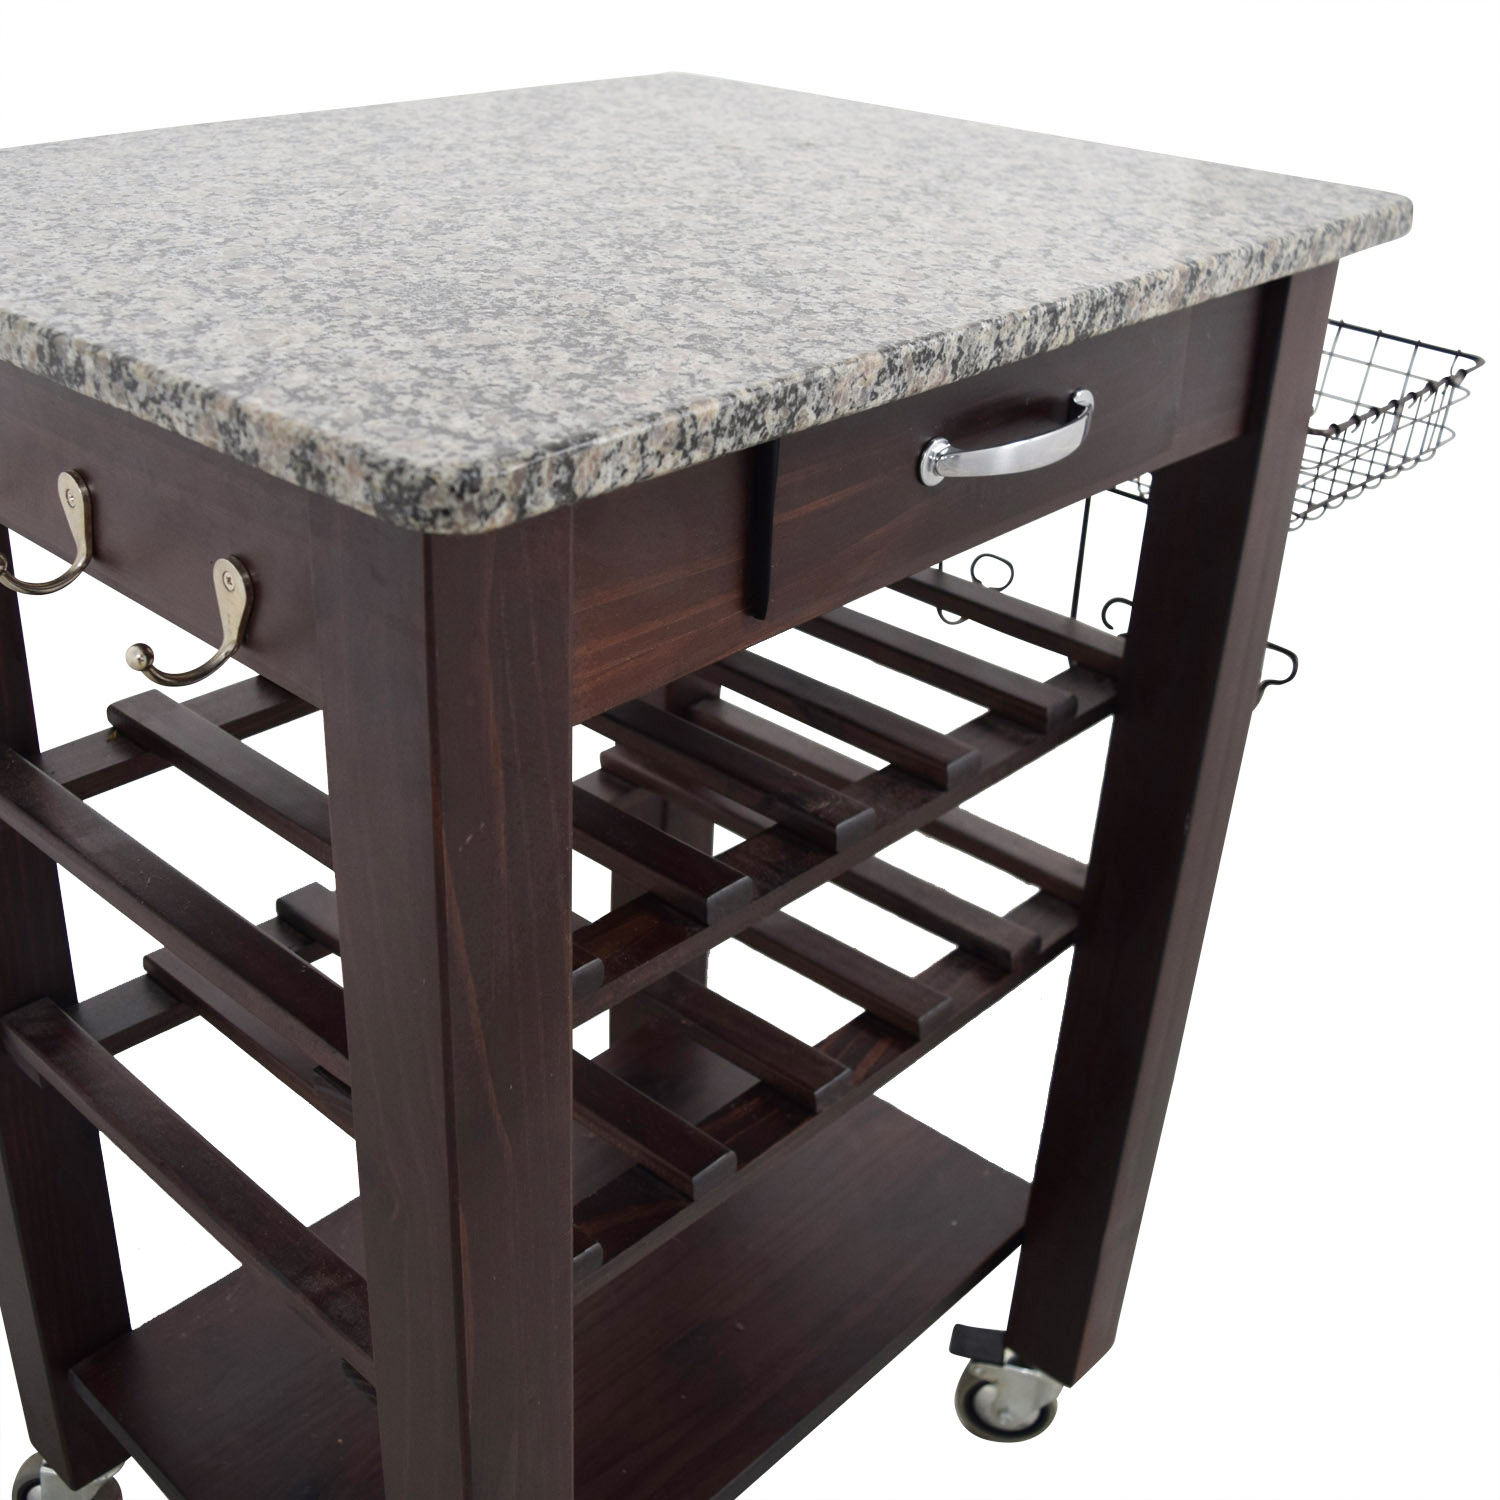 OFF Home Goods Home Goods Marble Top and Wood Base Kitchen